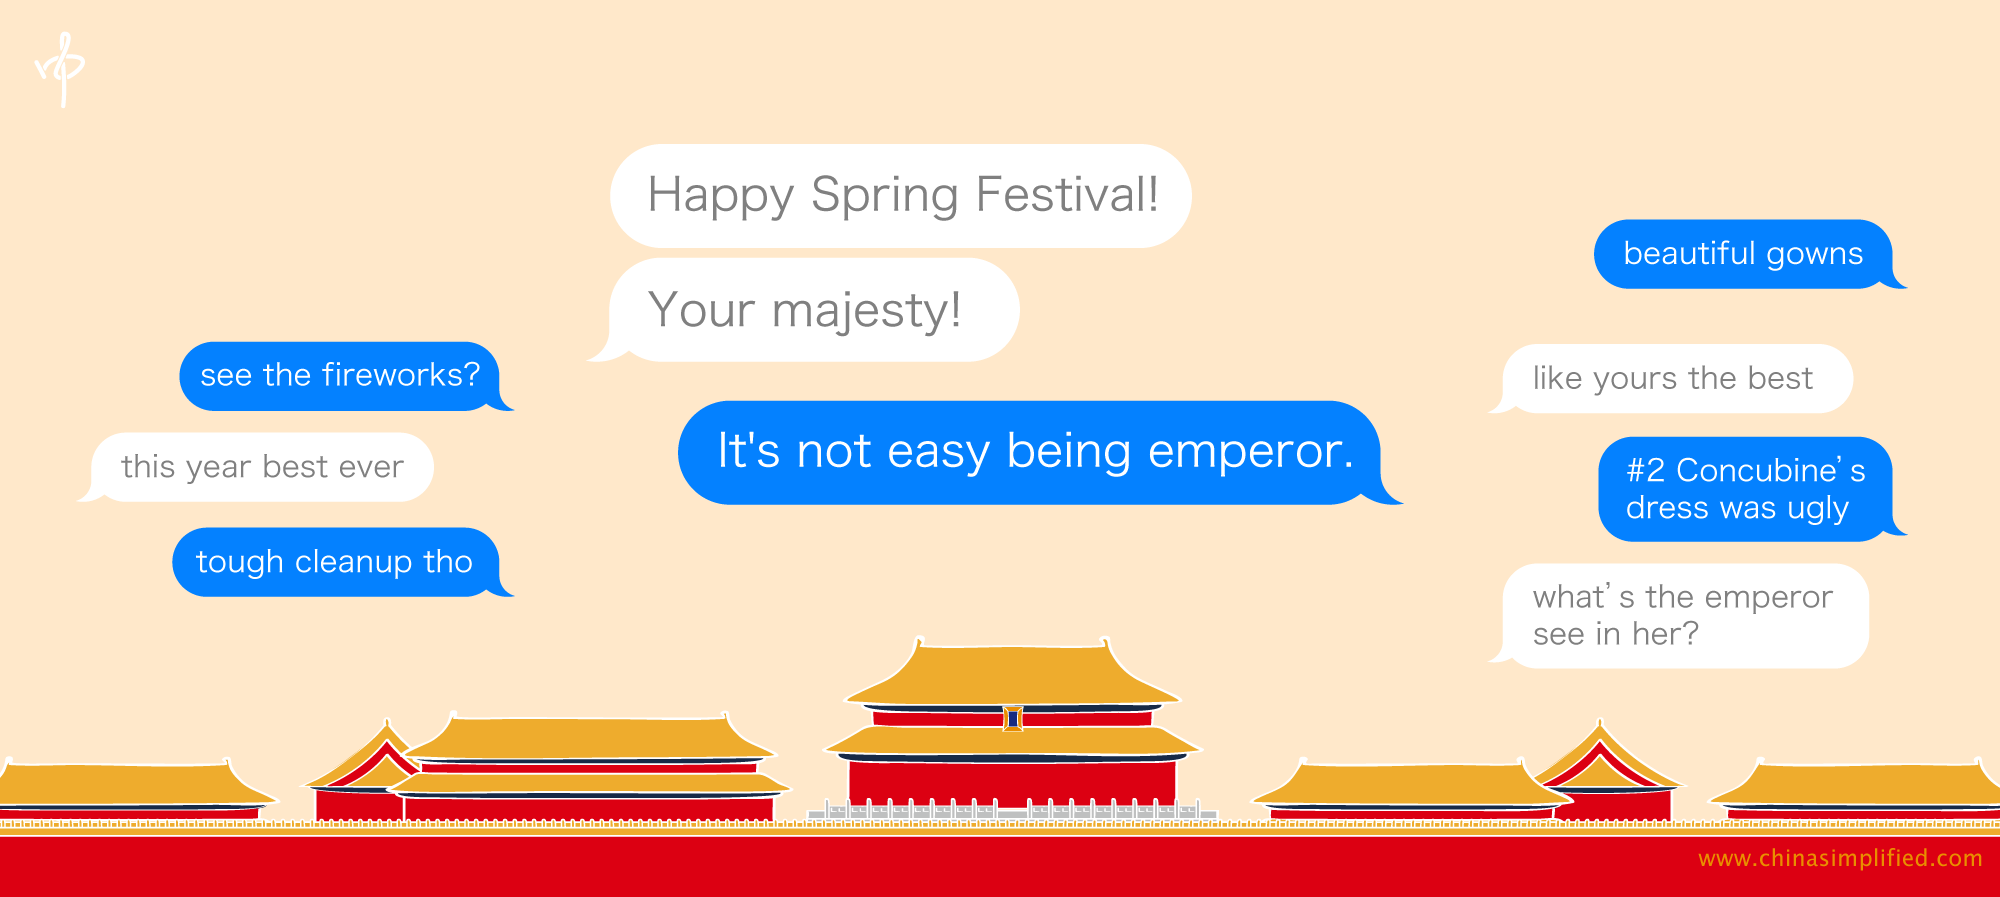 Chinese New Year: How Did The Emperor Celebrate?